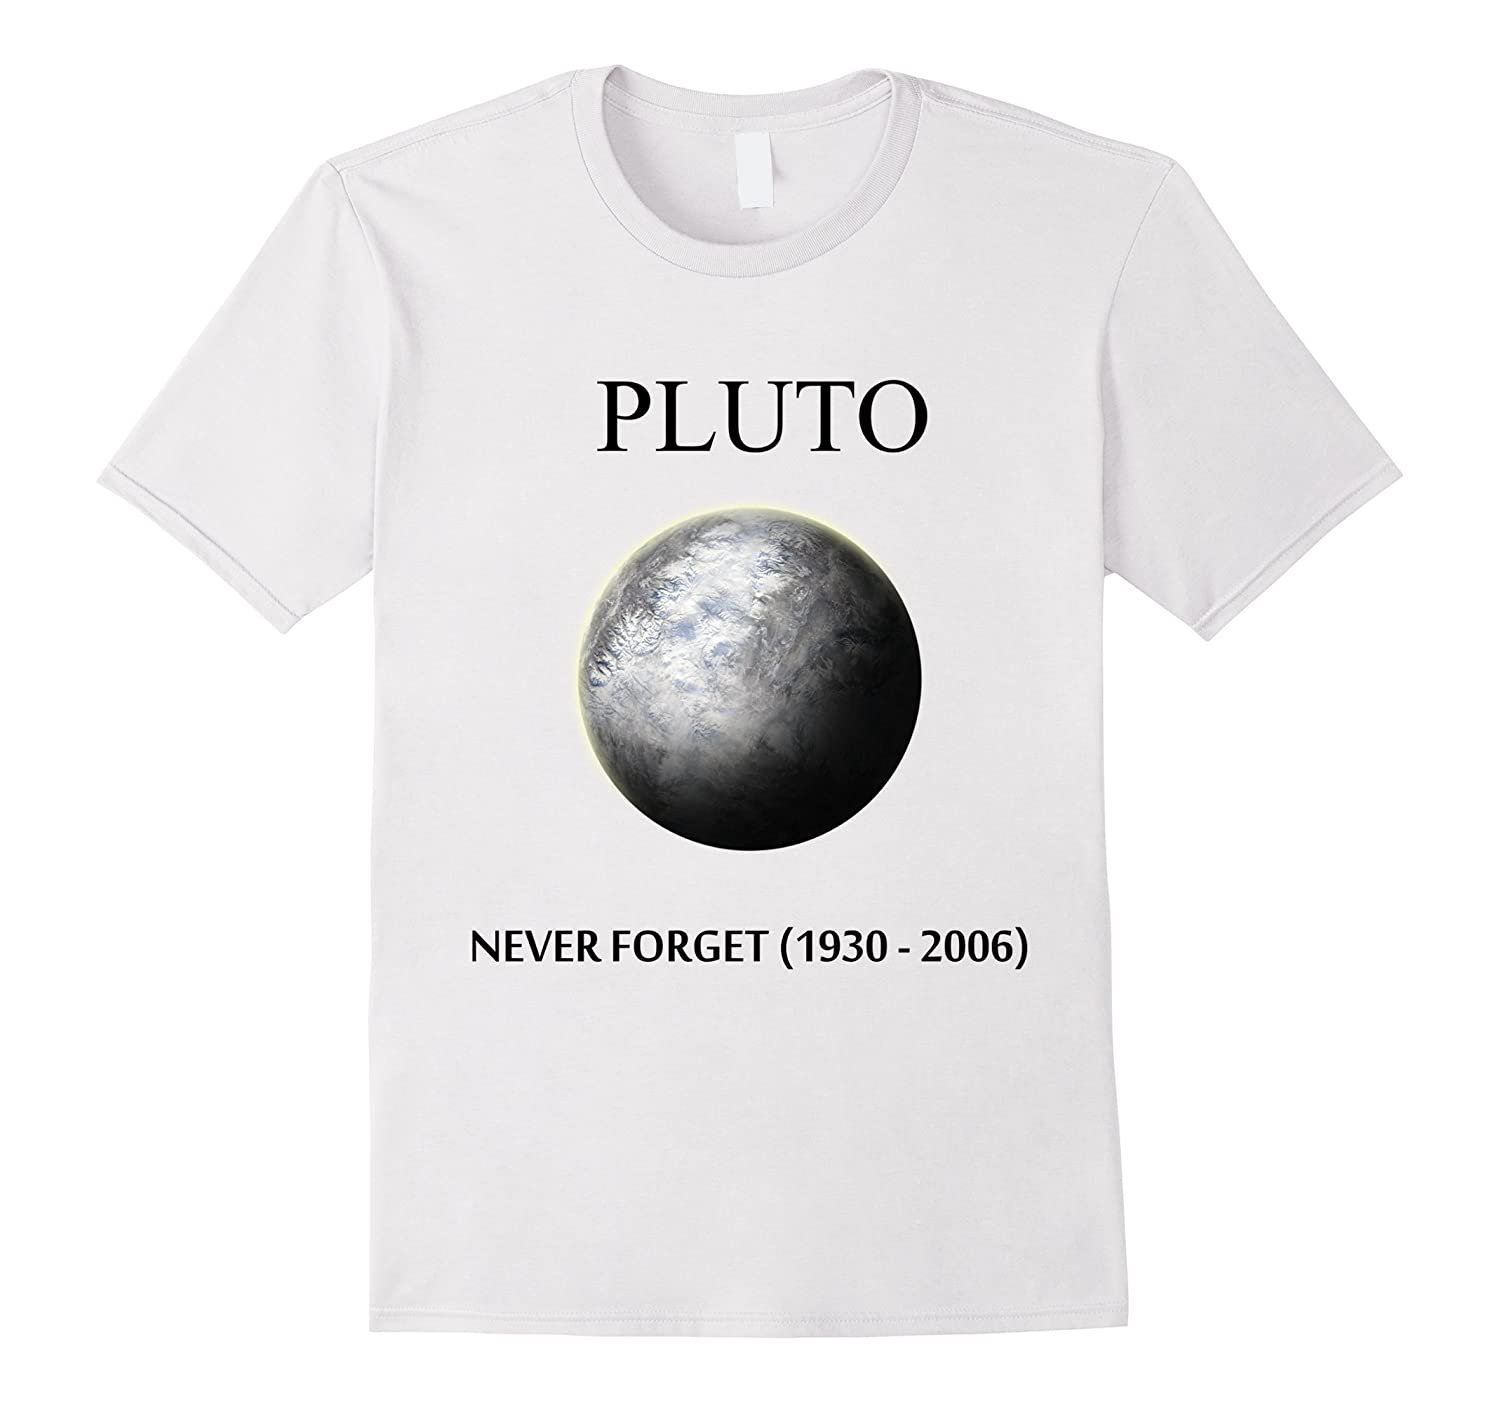 adbfdd6cf Pluto Never Forget 1930-2006 Awesome Science Planet Tshirt-RT ...